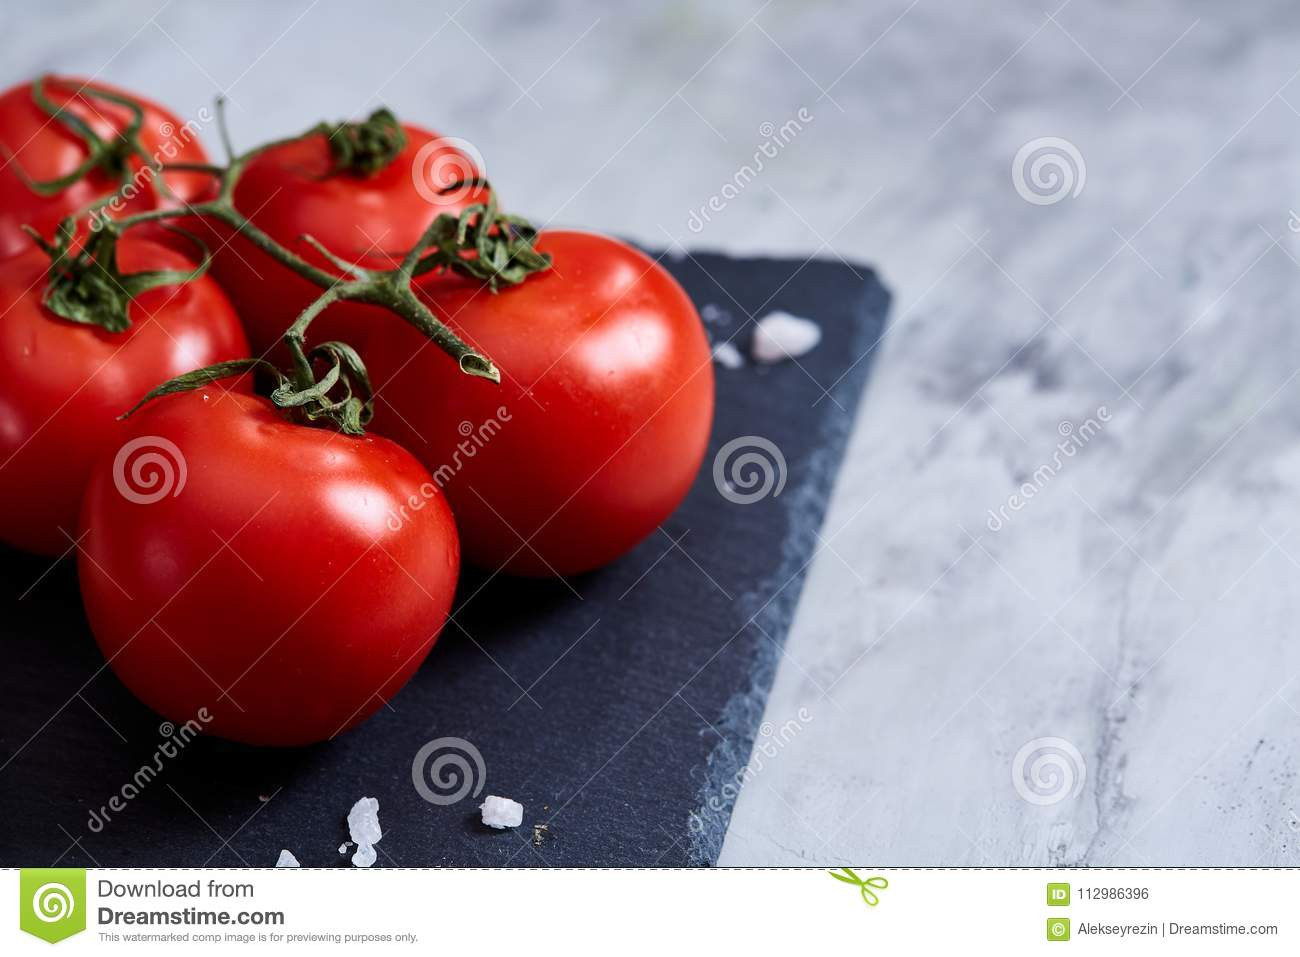 Bunch of fresh tomatoes with green leaves on stony board over white background, top view, close-up, selective focus